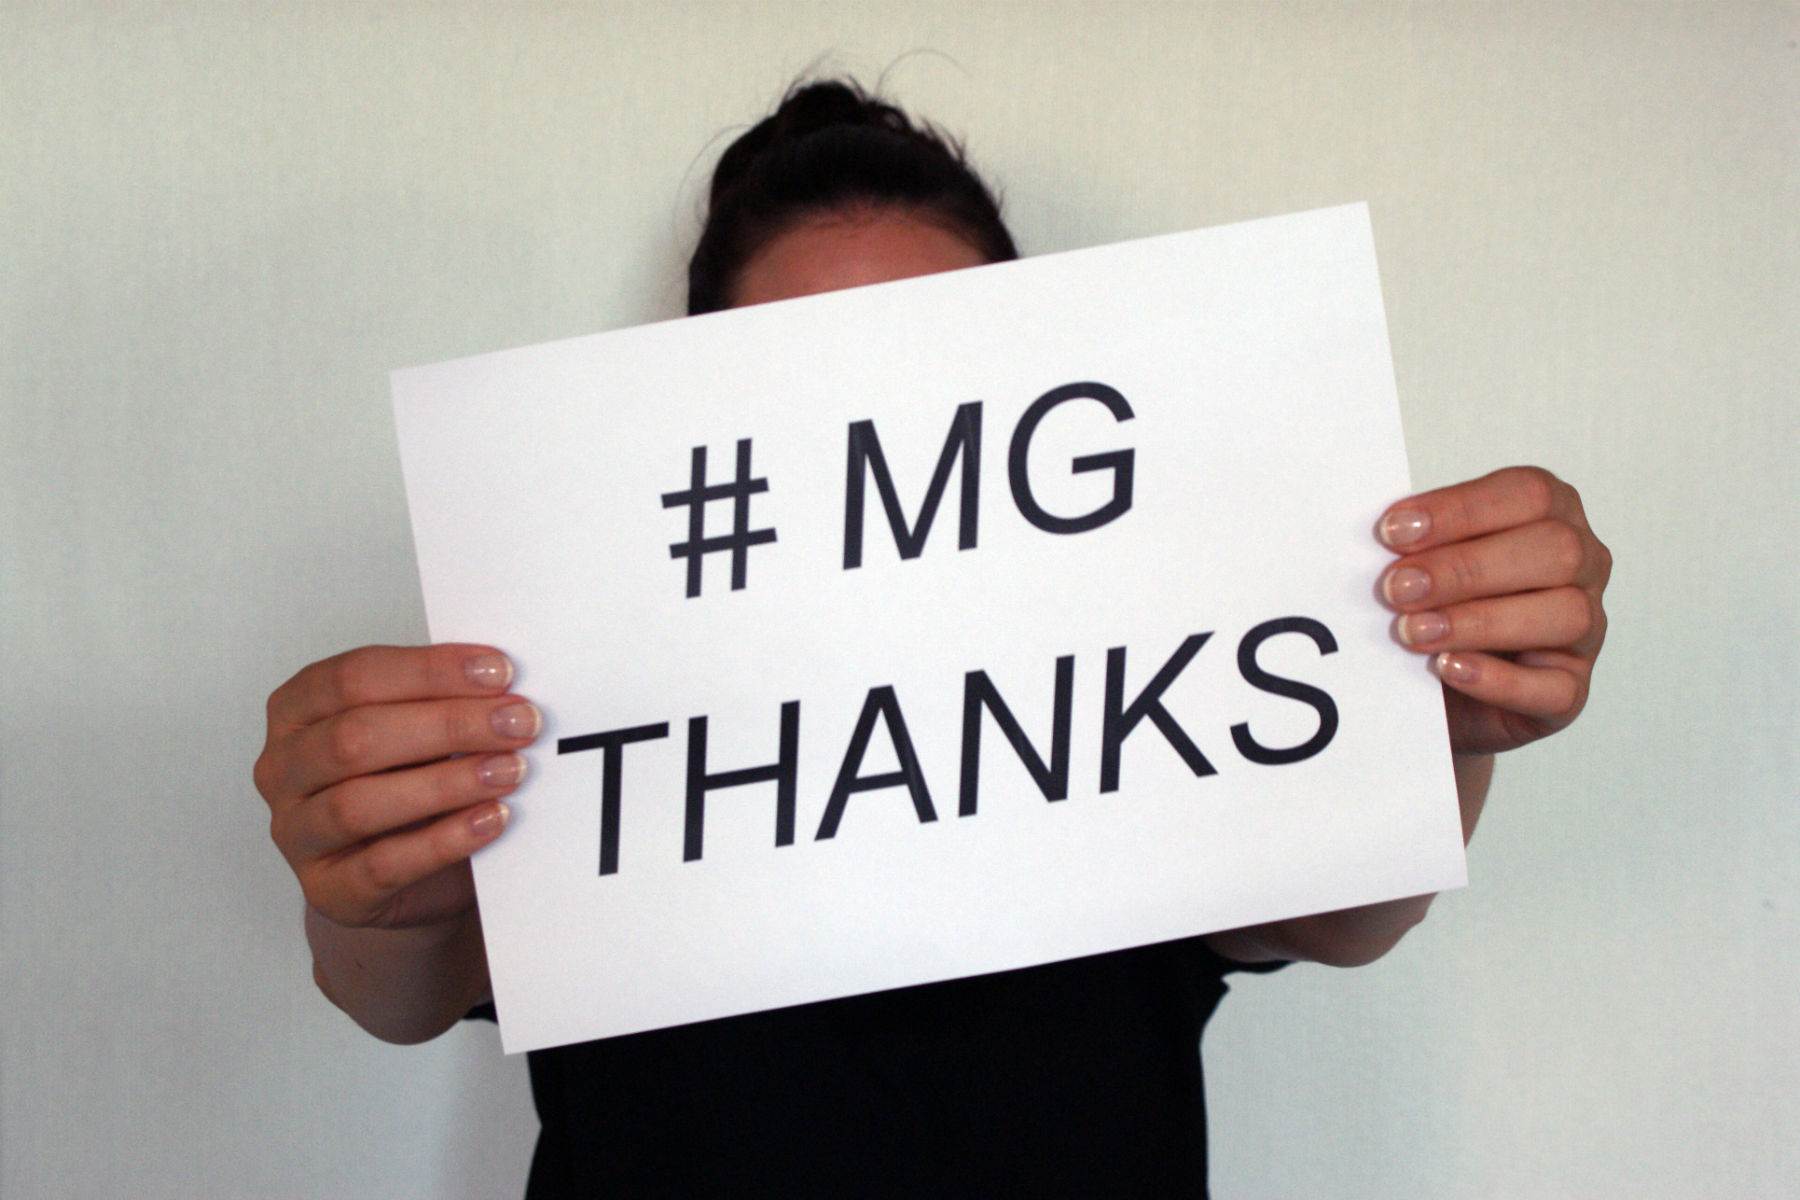 MG Motor UK sells 234 cars - says 'thanks'